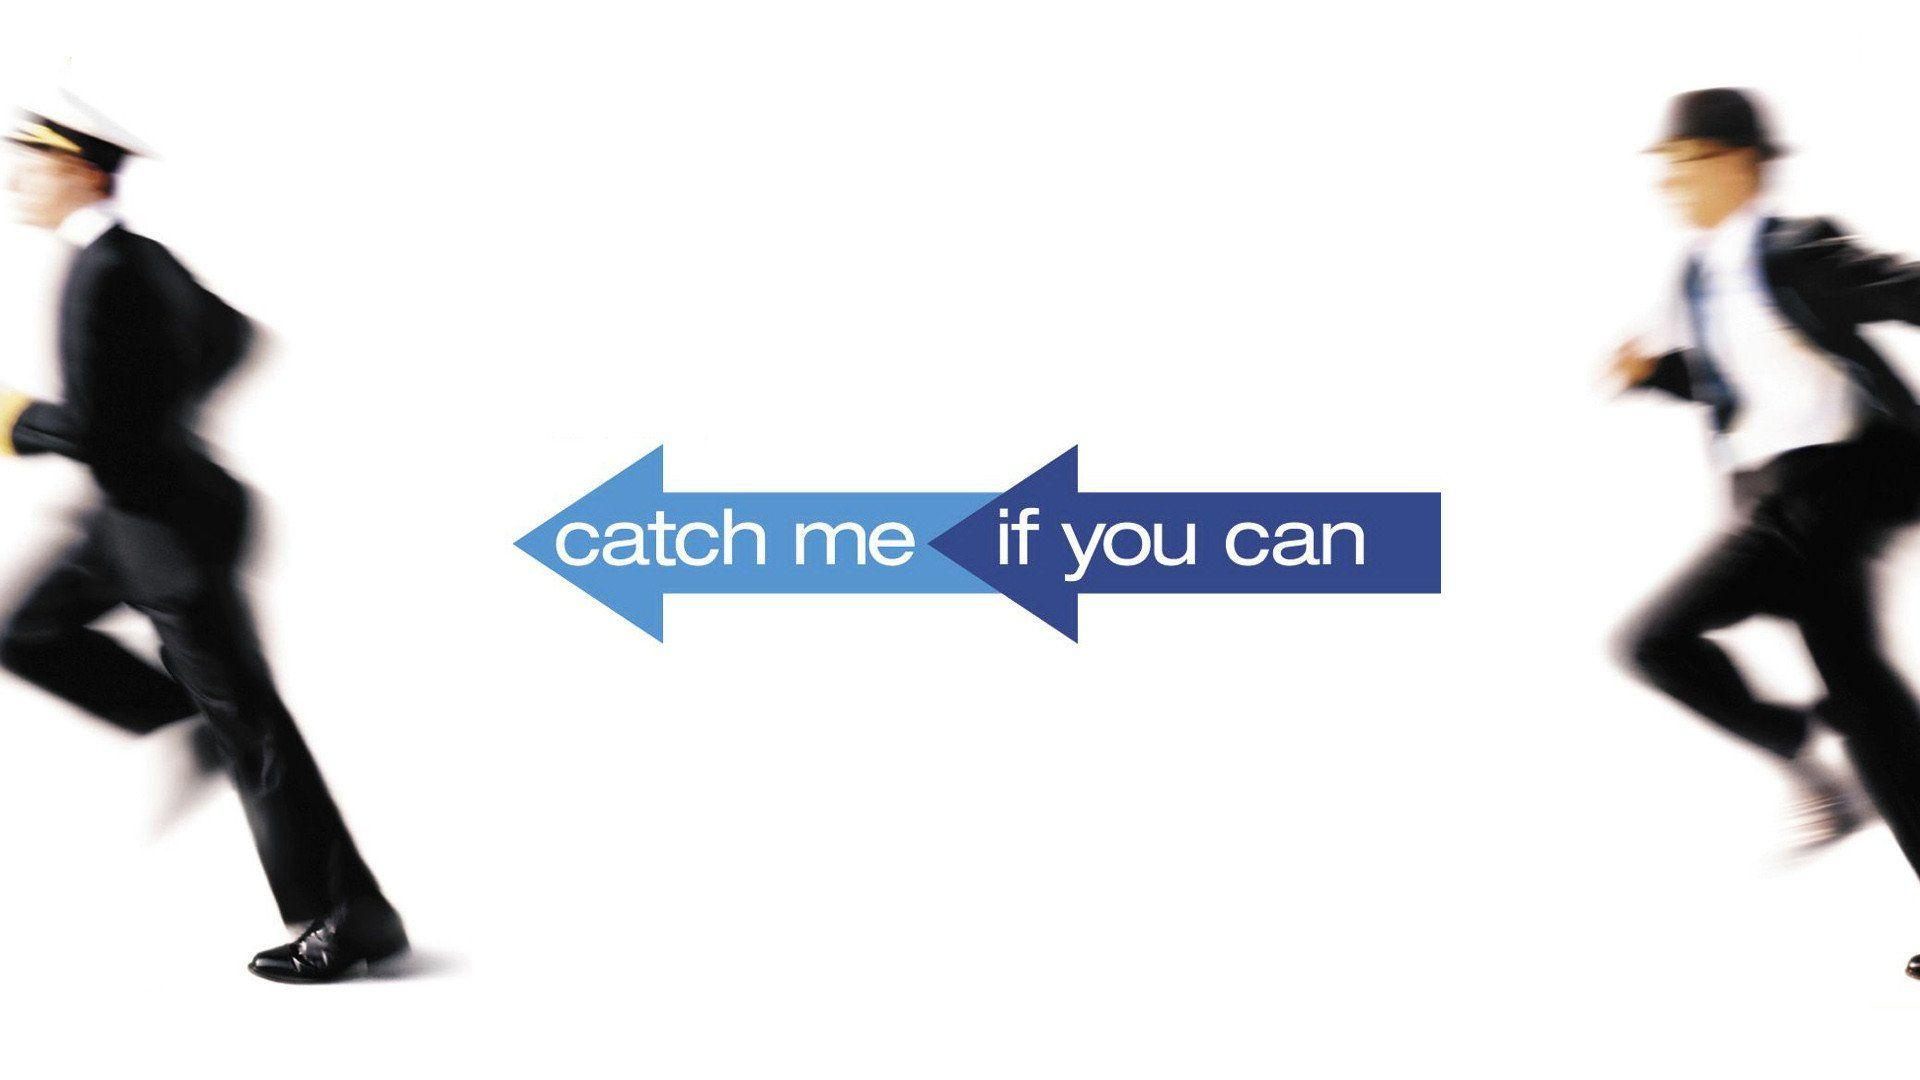 4 Catch Me If You Can HD Wallpapers | Background Images - Wallpaper ...